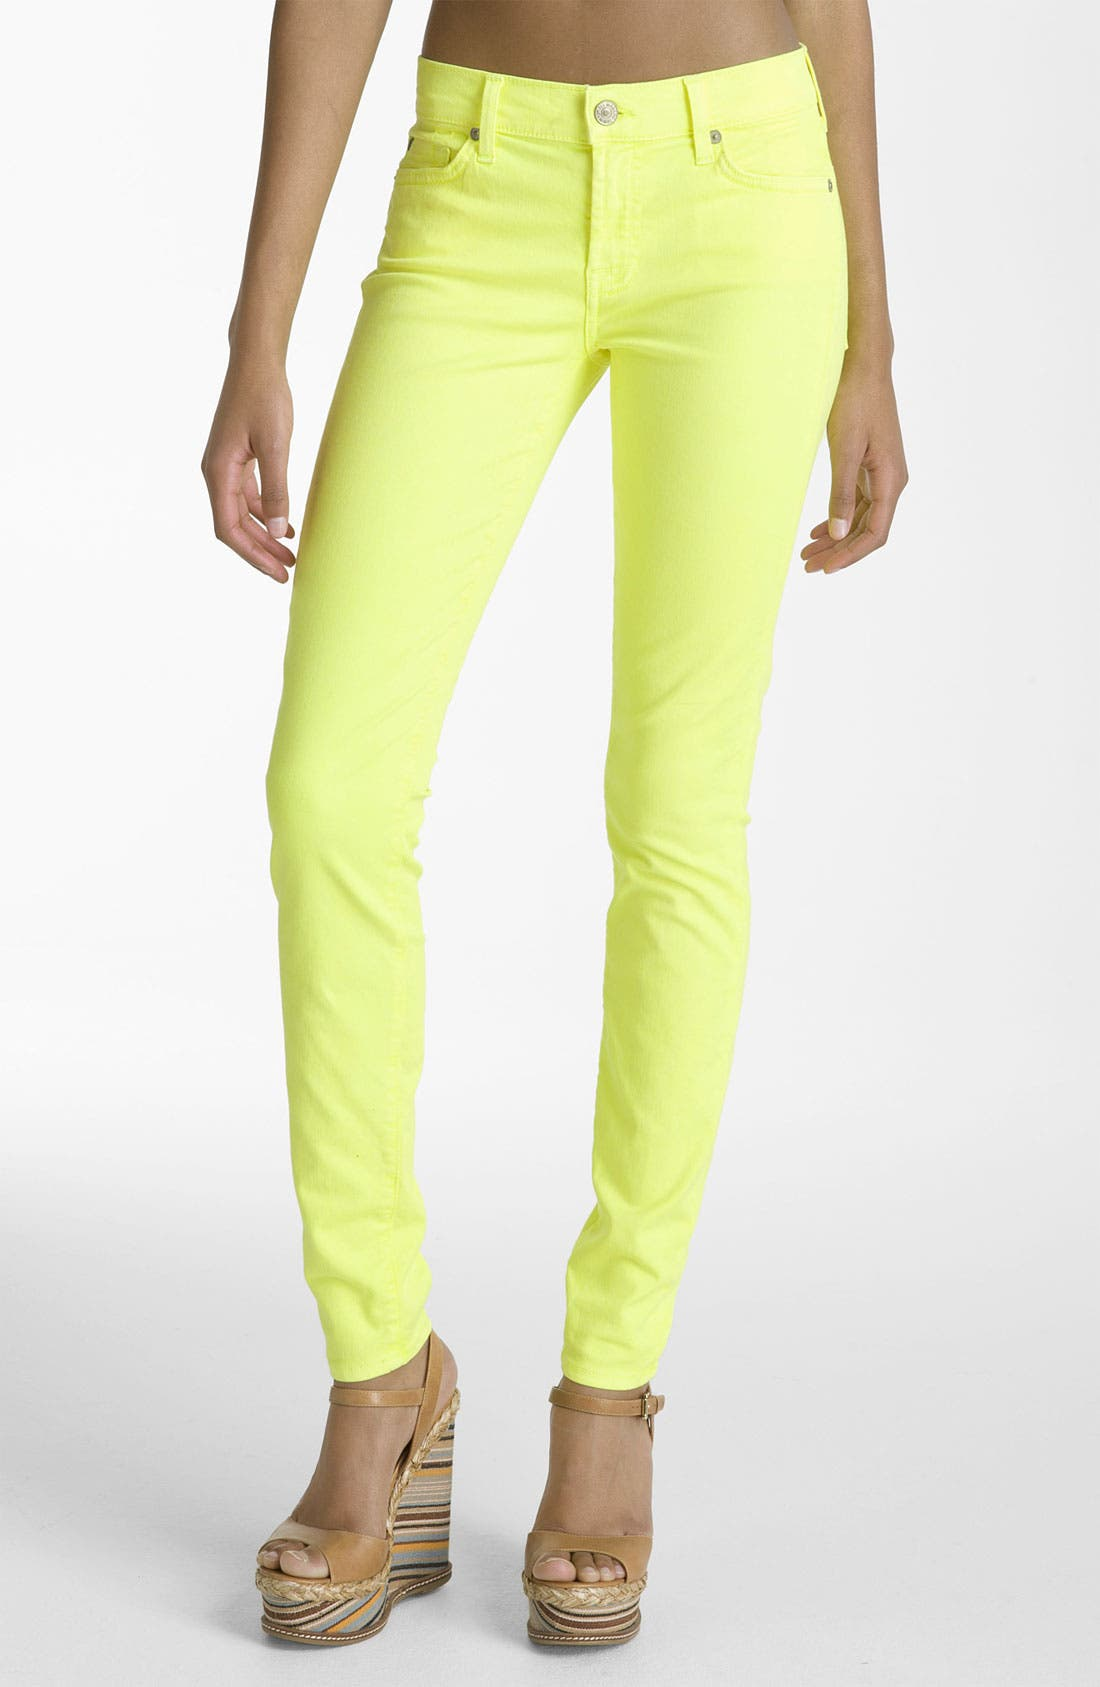 Main Image - 7 For All Mankind® 'The Skinny' Overdyed Jeans (Neon Citron Wash)